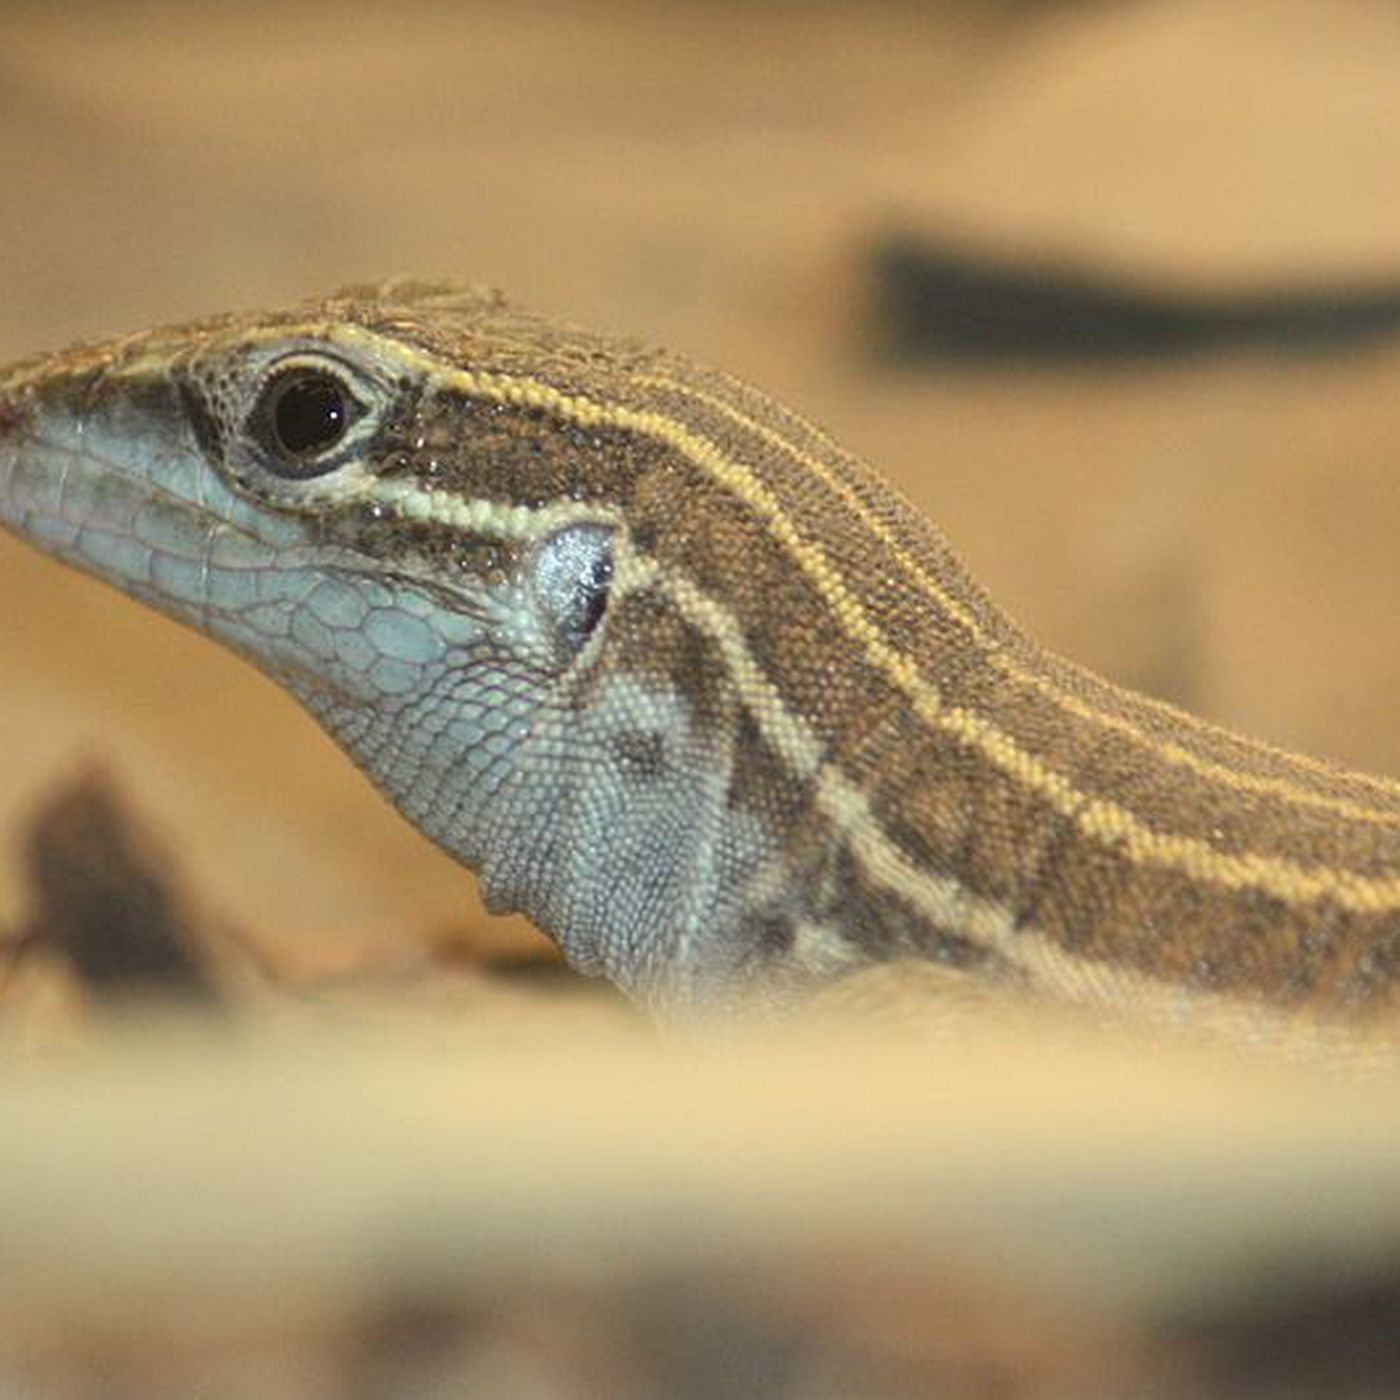 The Verge Review of Animals: the all-female whiptail lizard - The Verge